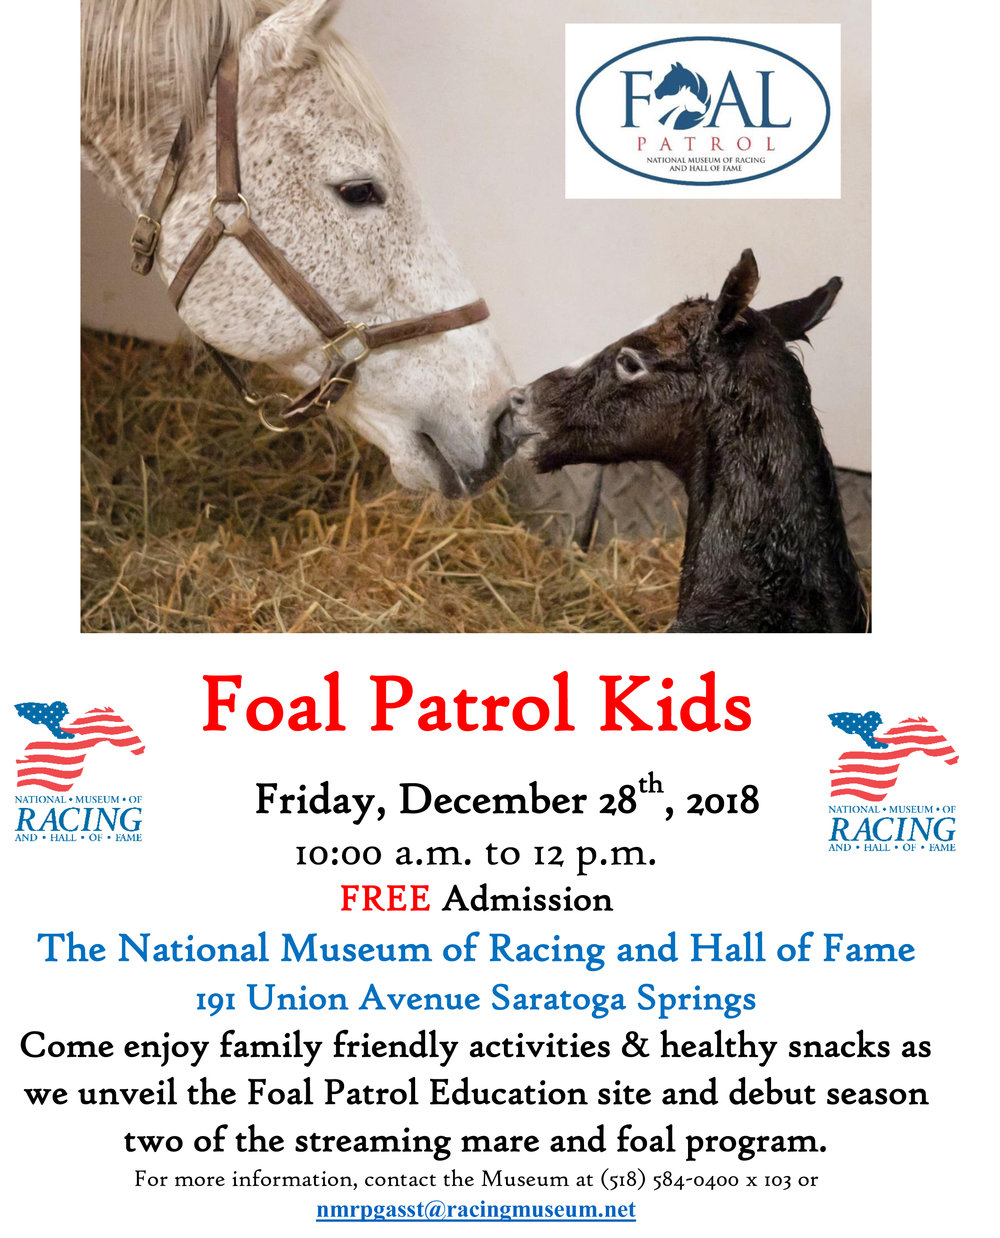 Foal Patrol Kids event flyer 12.jpg